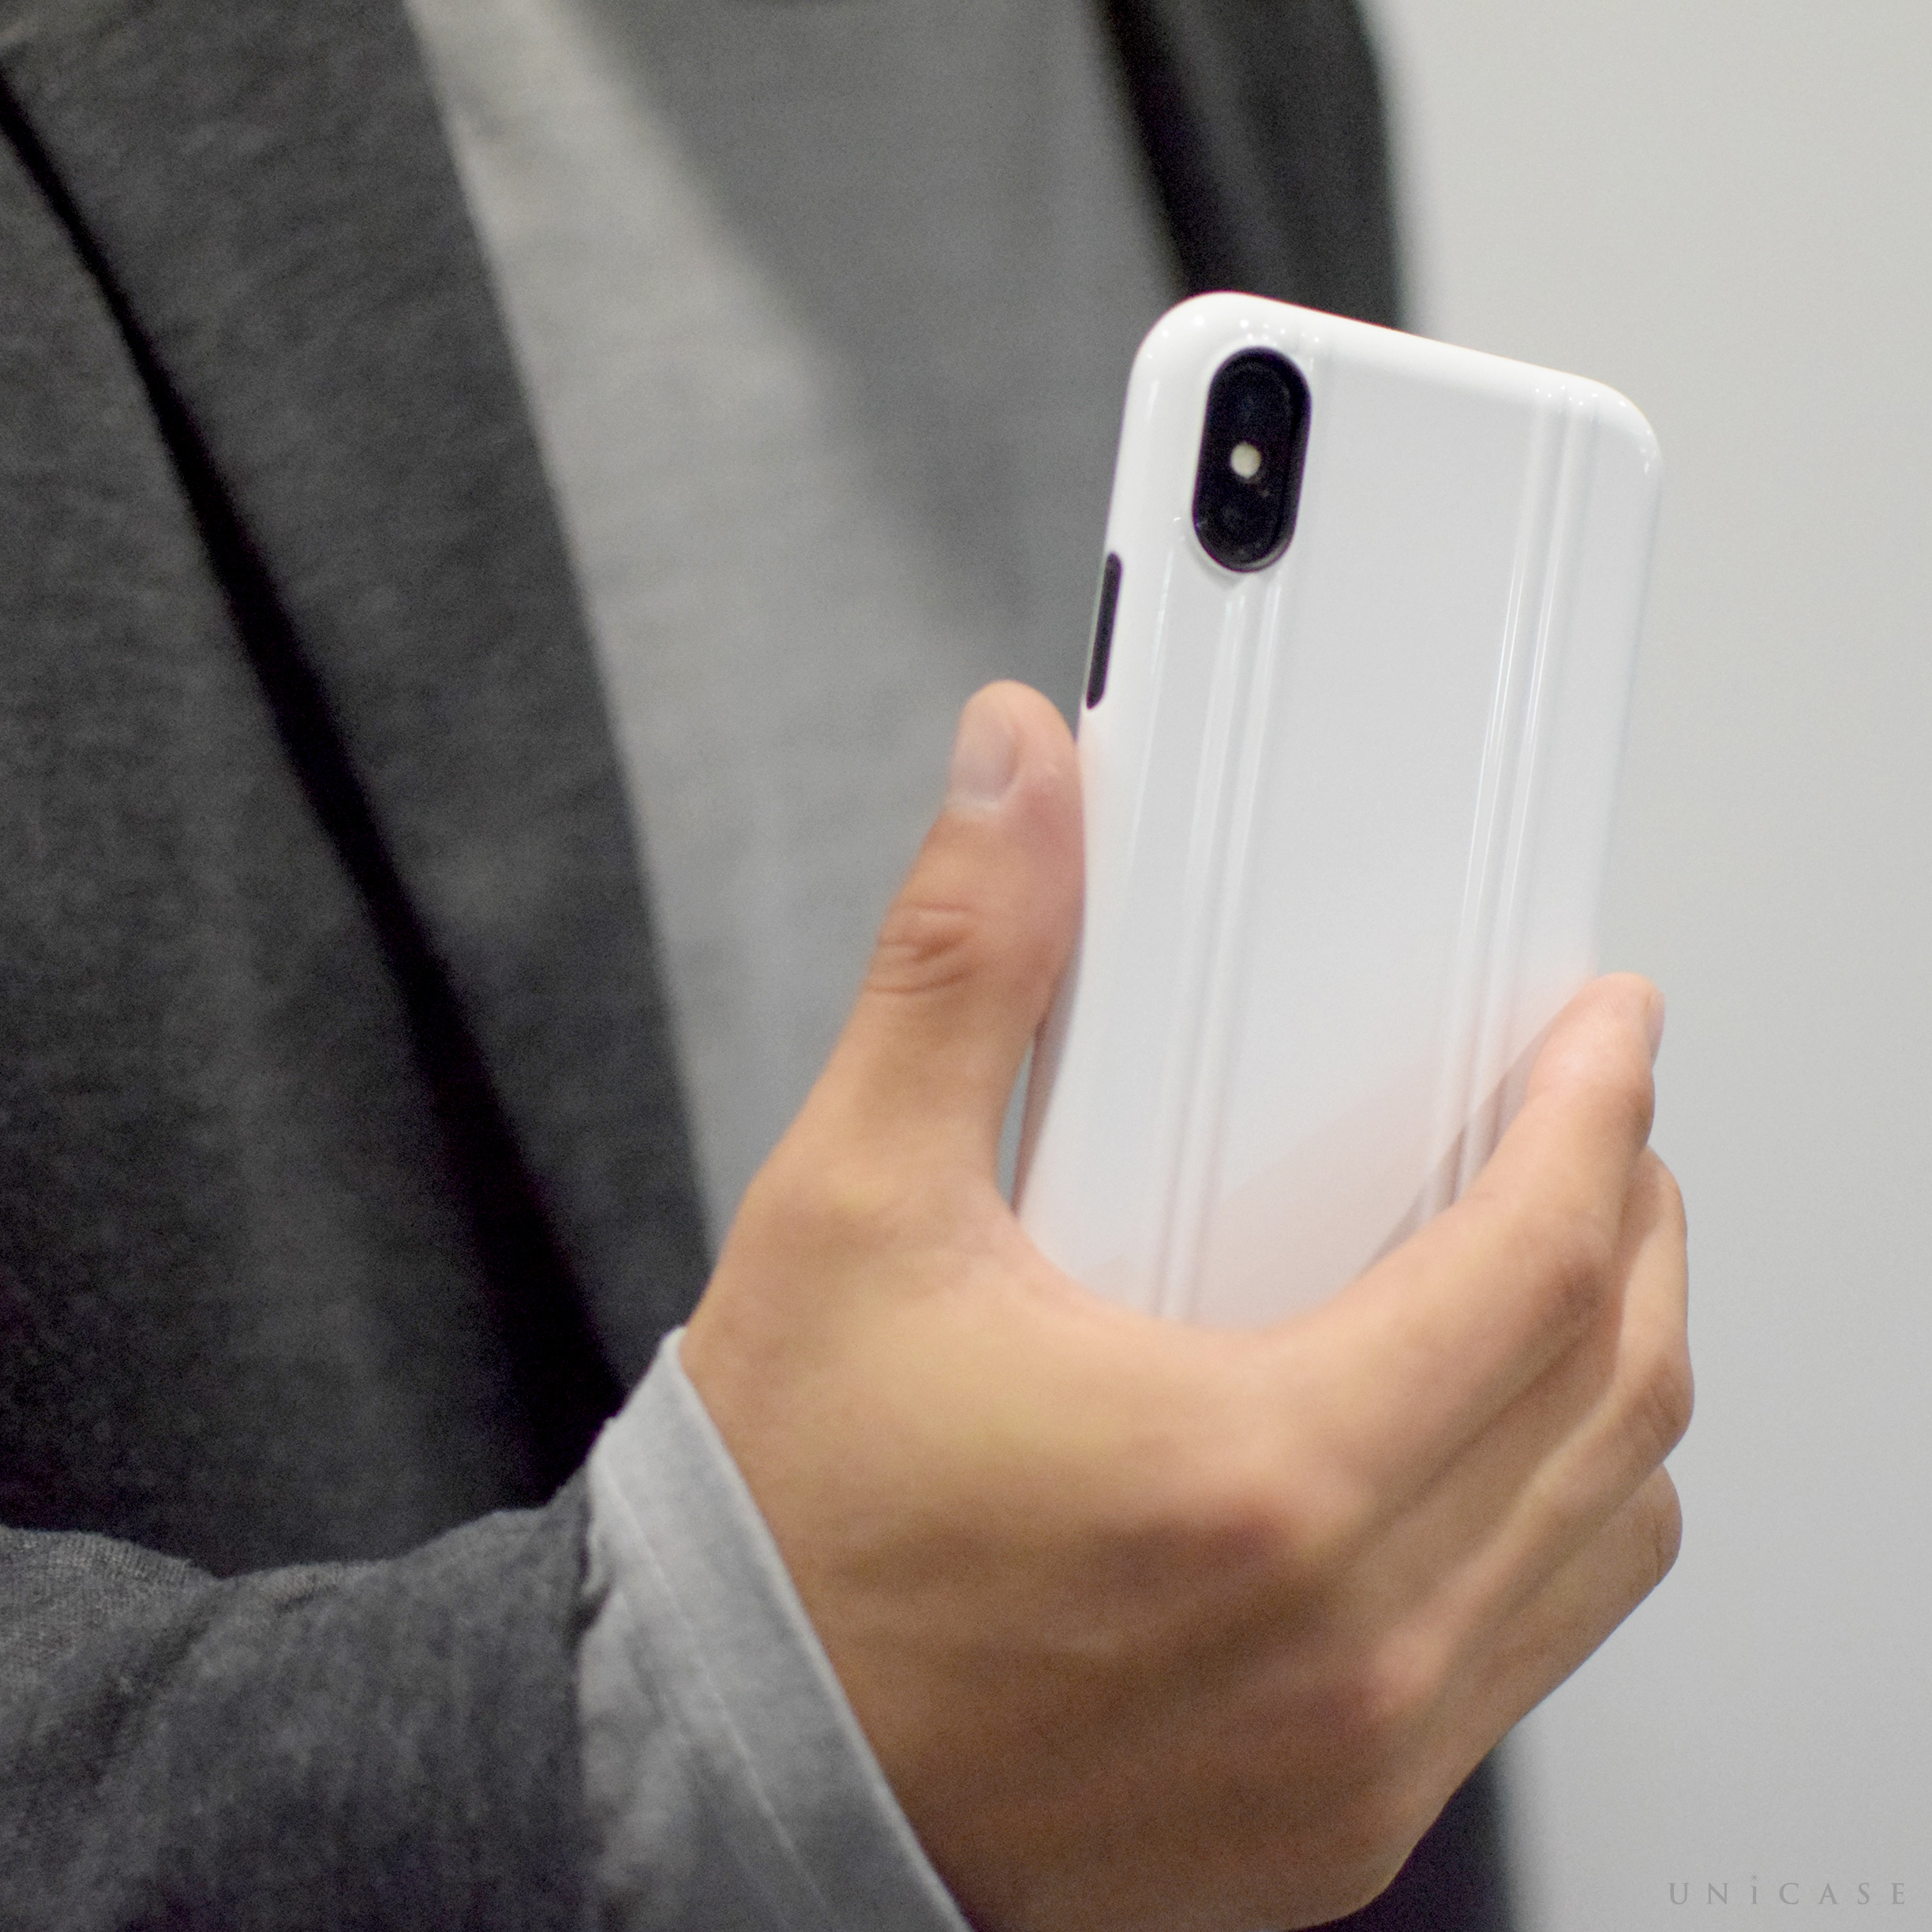 【iPhoneX ケース】ZERO HALLIBURTON Shockproof case for iPhone X ホワイト 詳細画像02